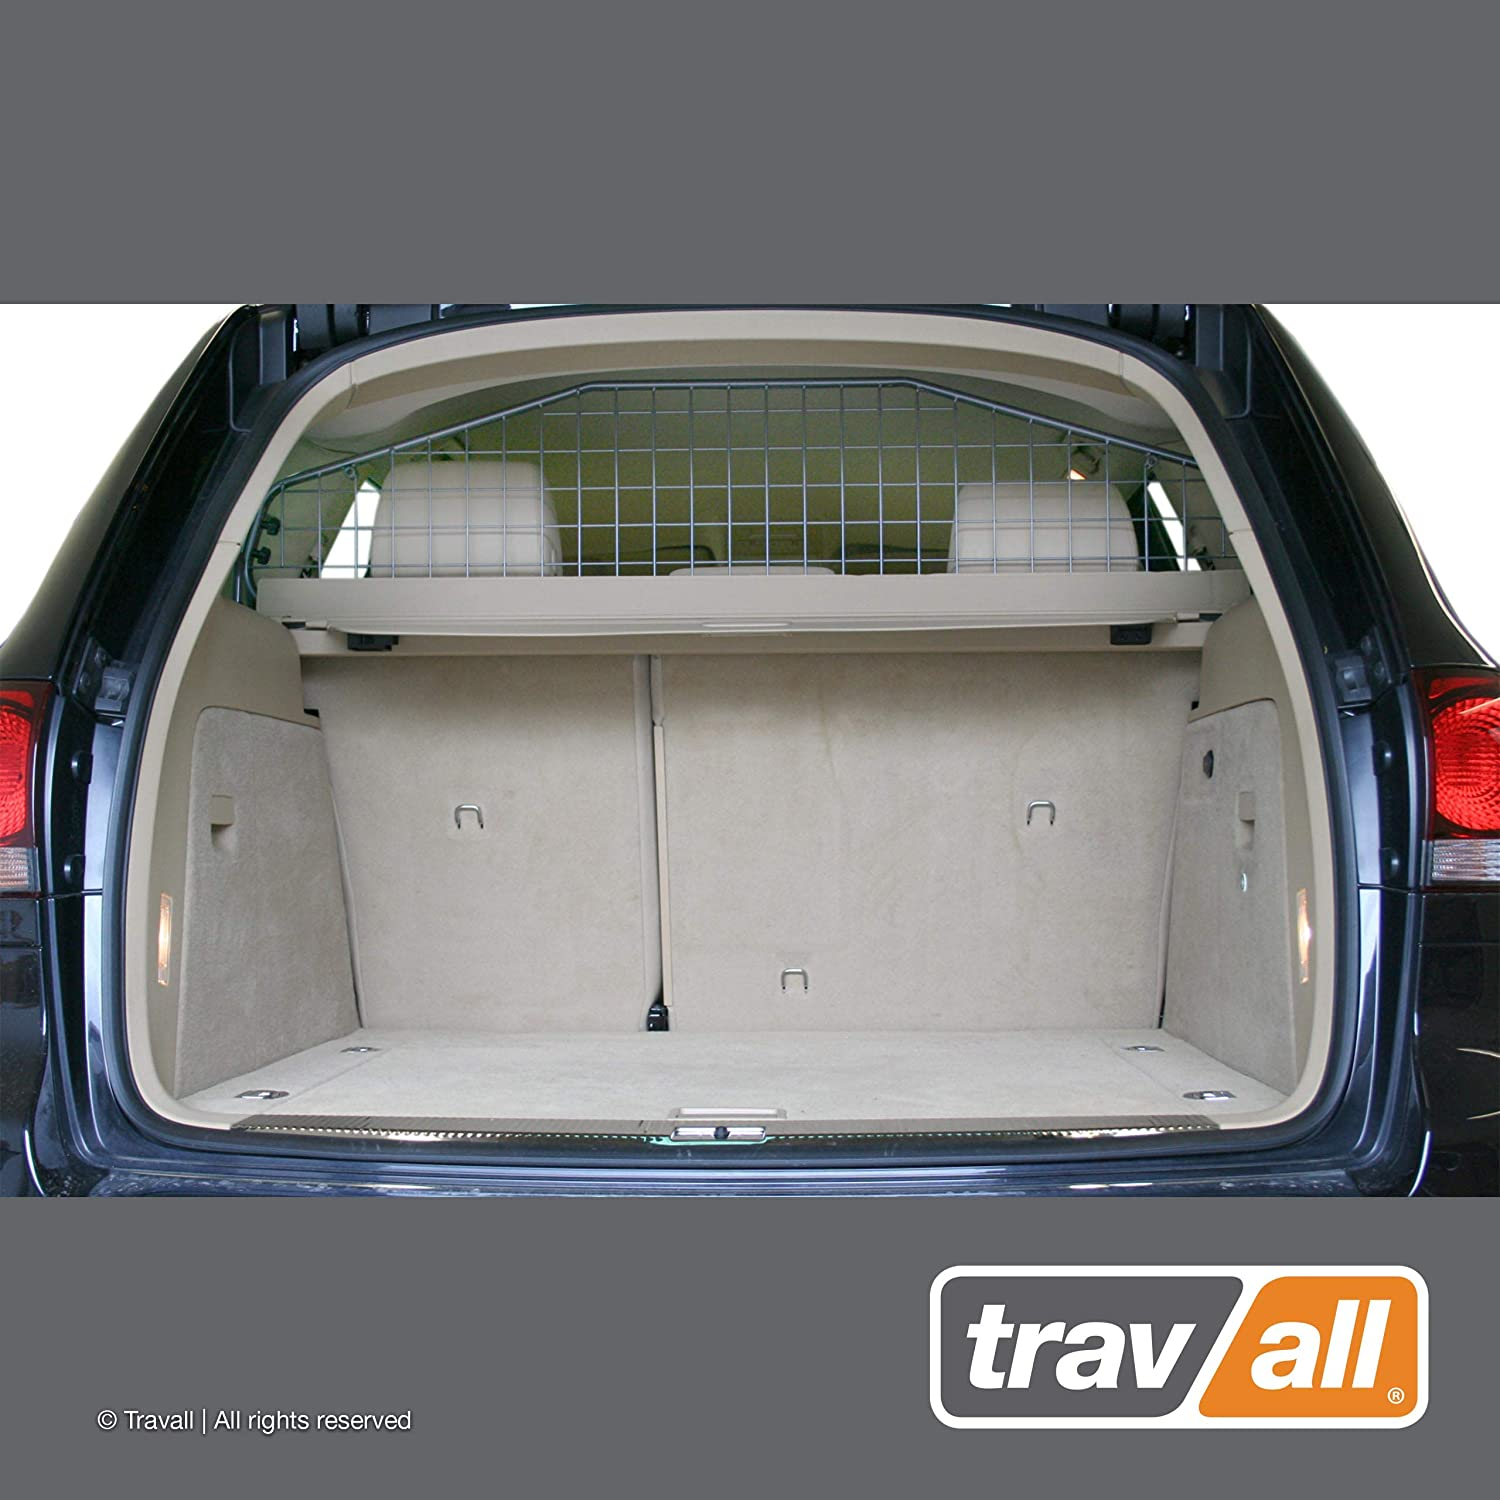 Travall Guard Compatible with Volkswagen Touareg 2002-2010 TDG1197 – Rattle-Free Steel Pet Barrier